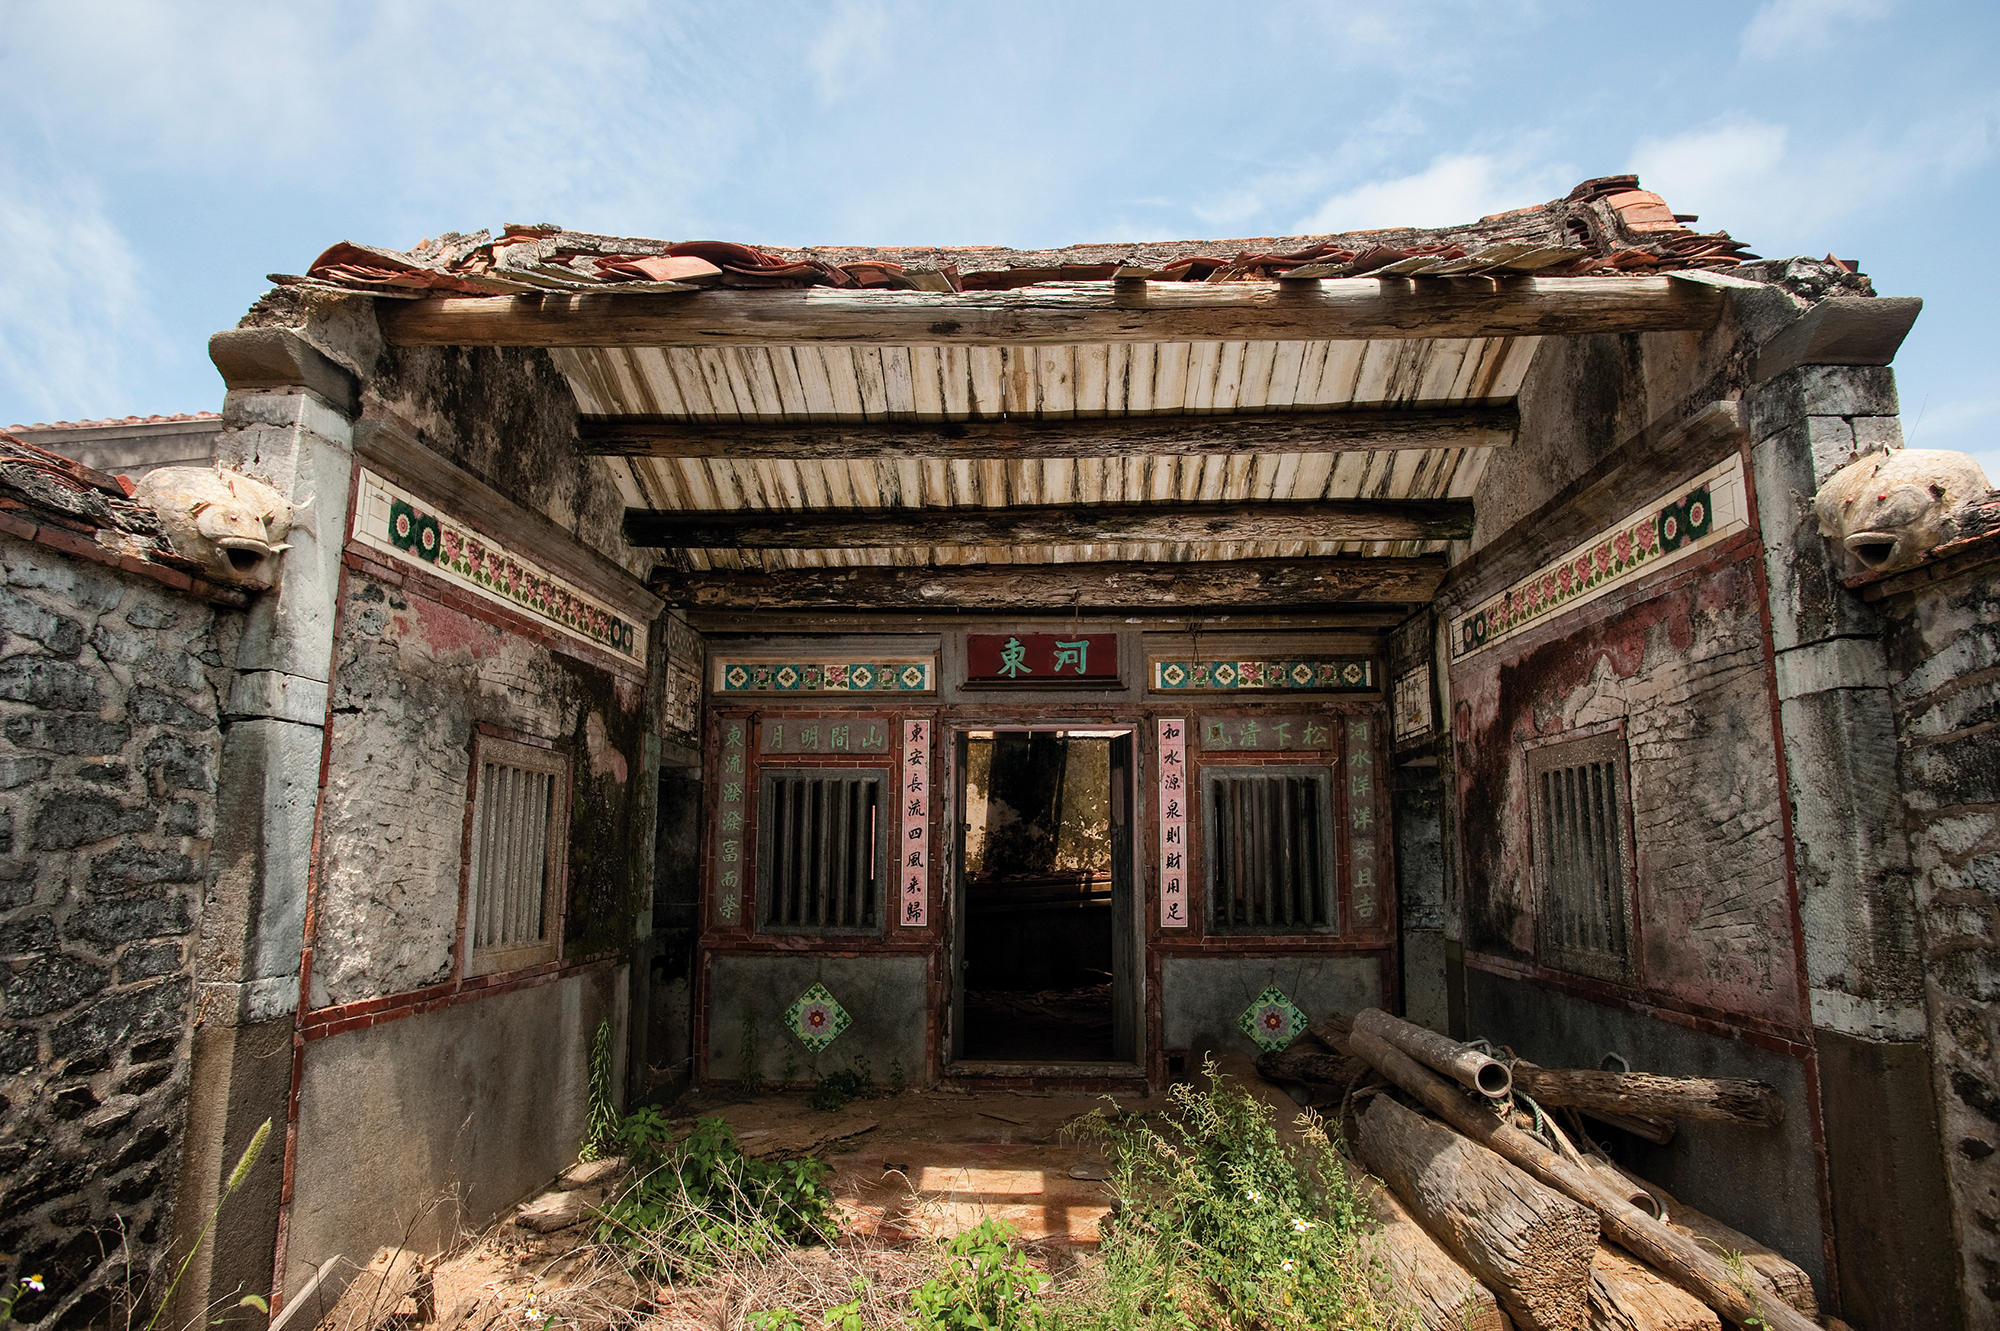 Abandoned residences on Wang'an Island hint at the prosperity of a bygone era. (photo by Chuang Kung-ju)